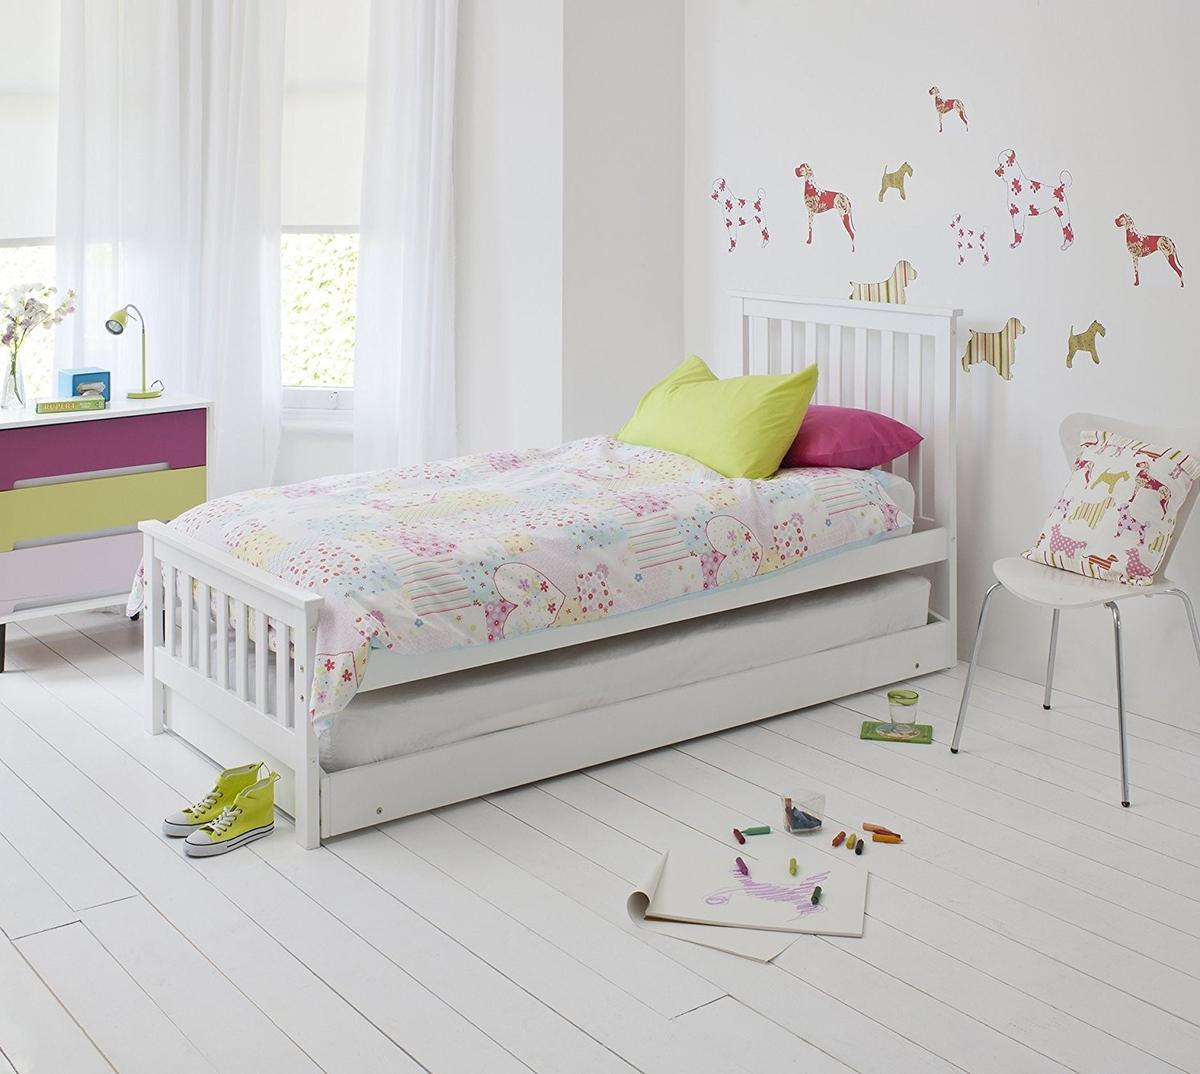 Cabin Bed With Slide Midsleeper Kids